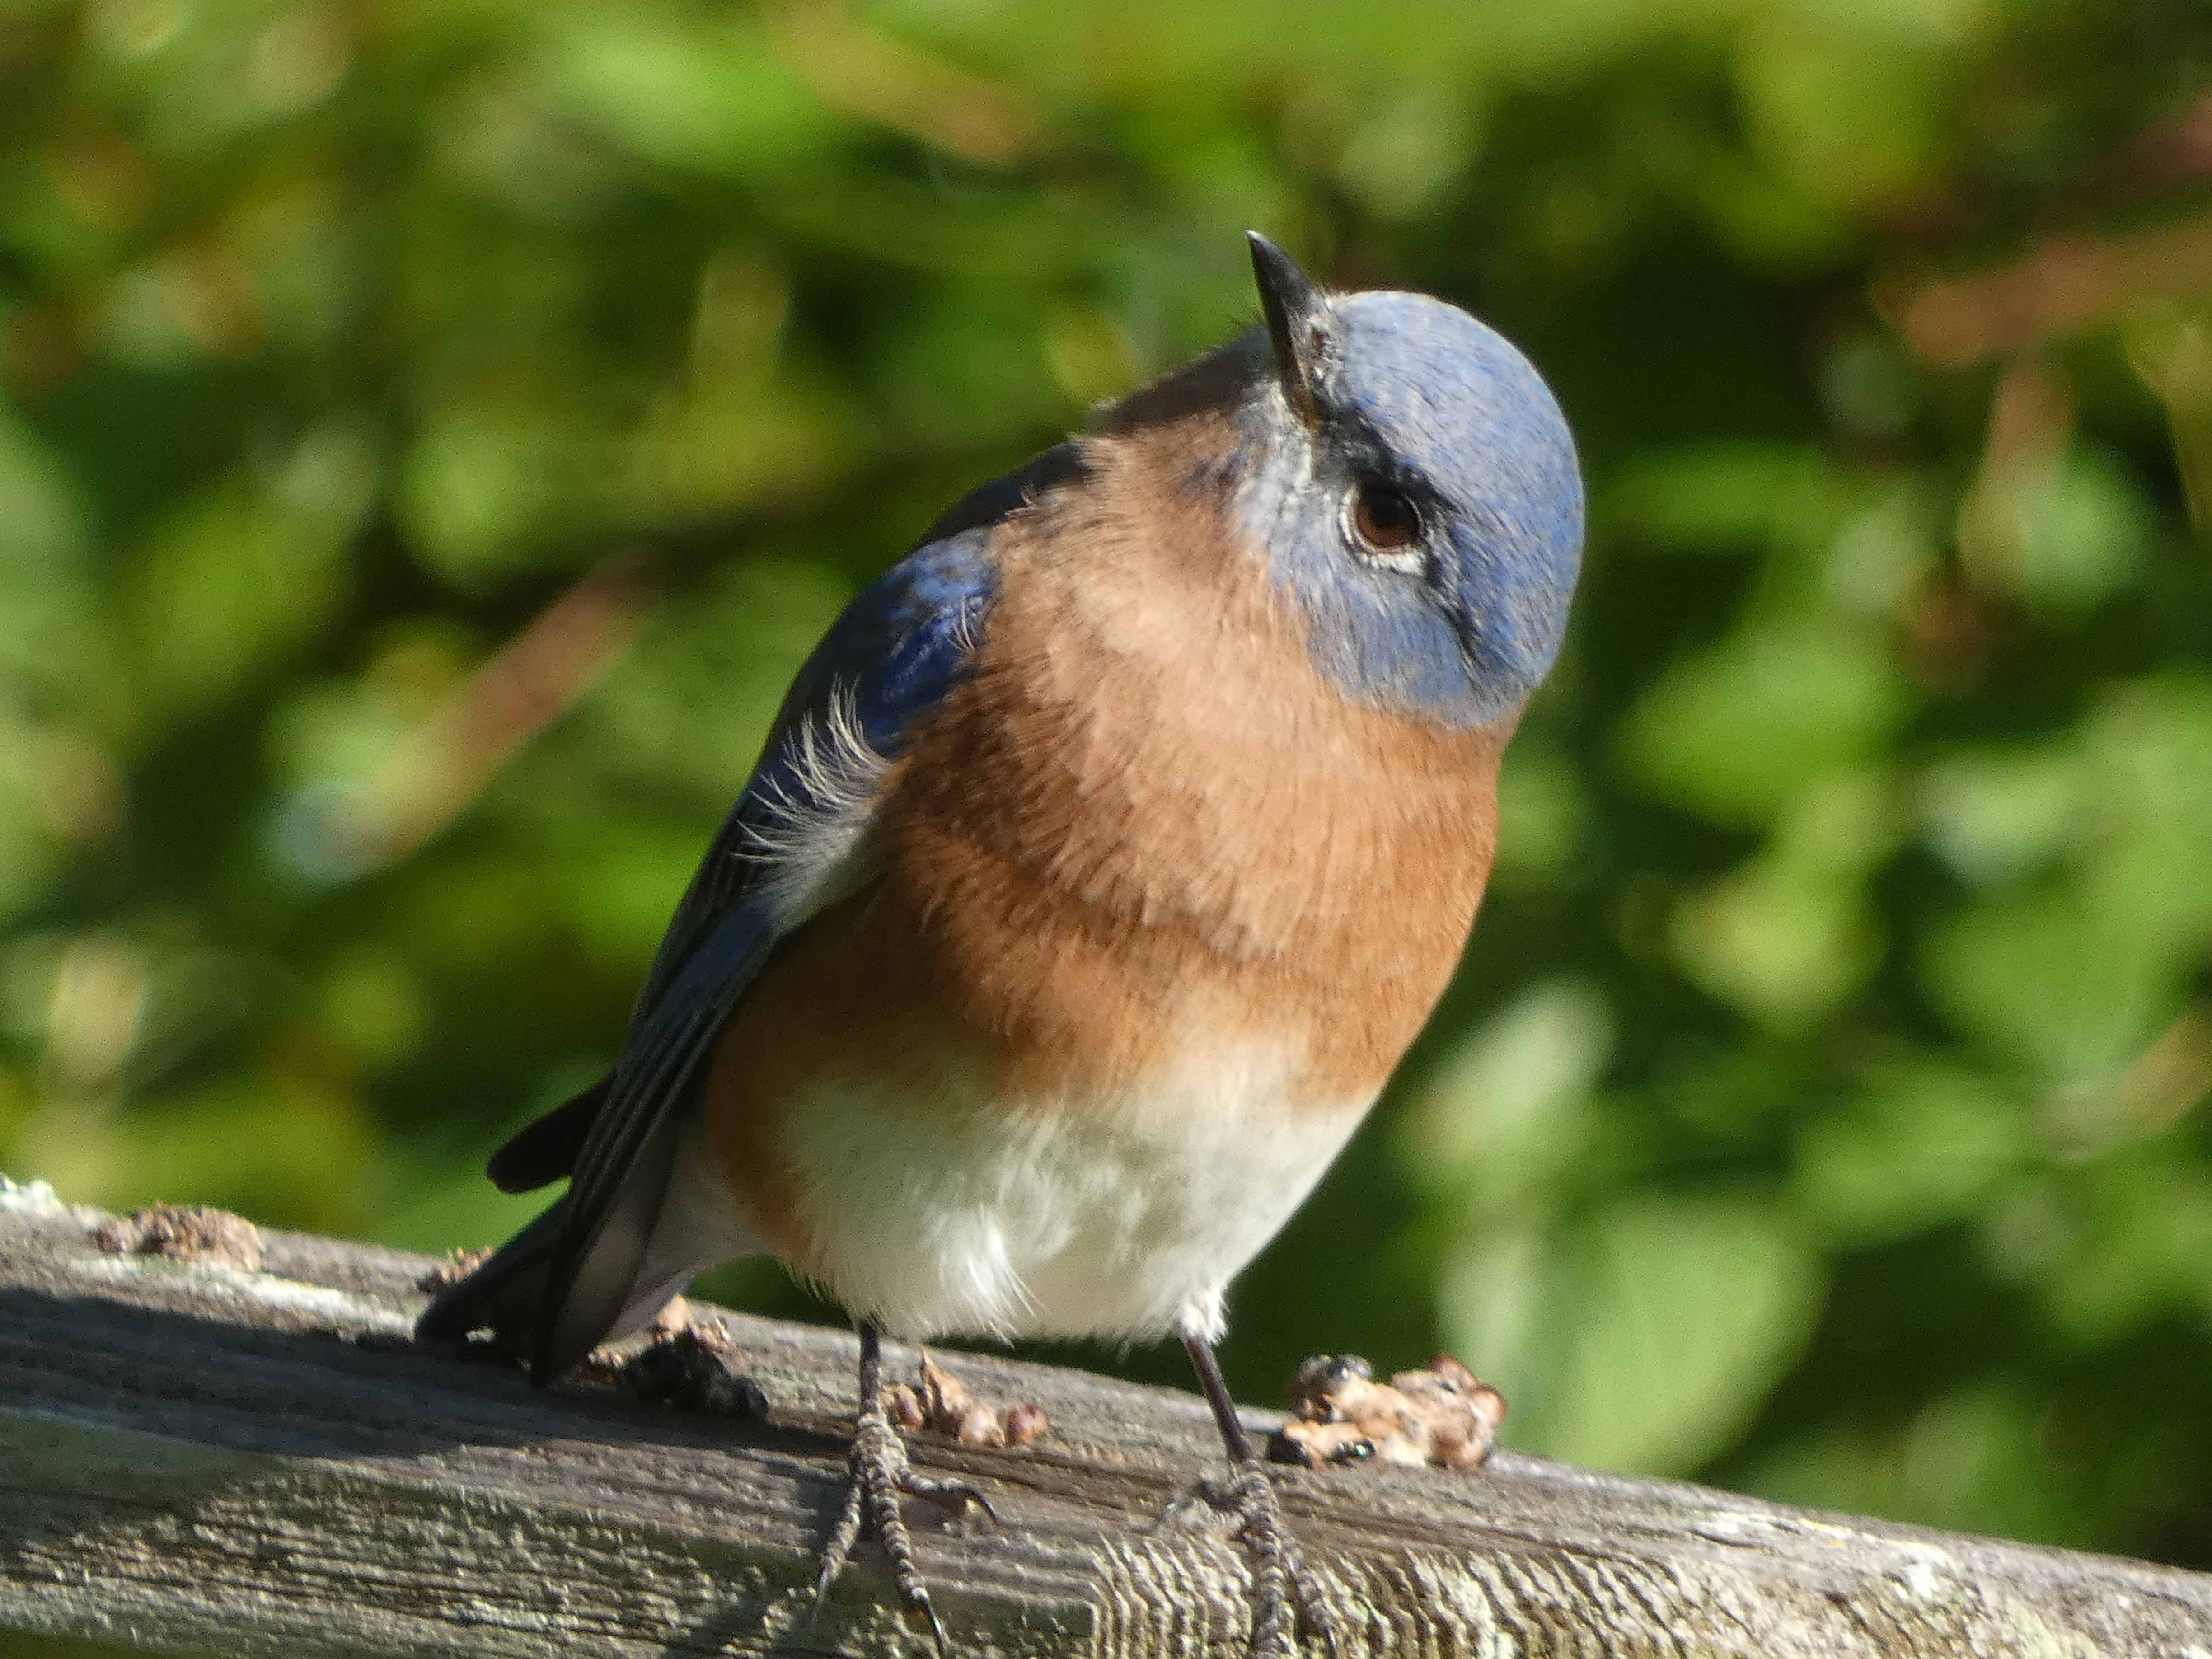 Bluebirds have the sweetest faces. Just look at those dreamy eyes!